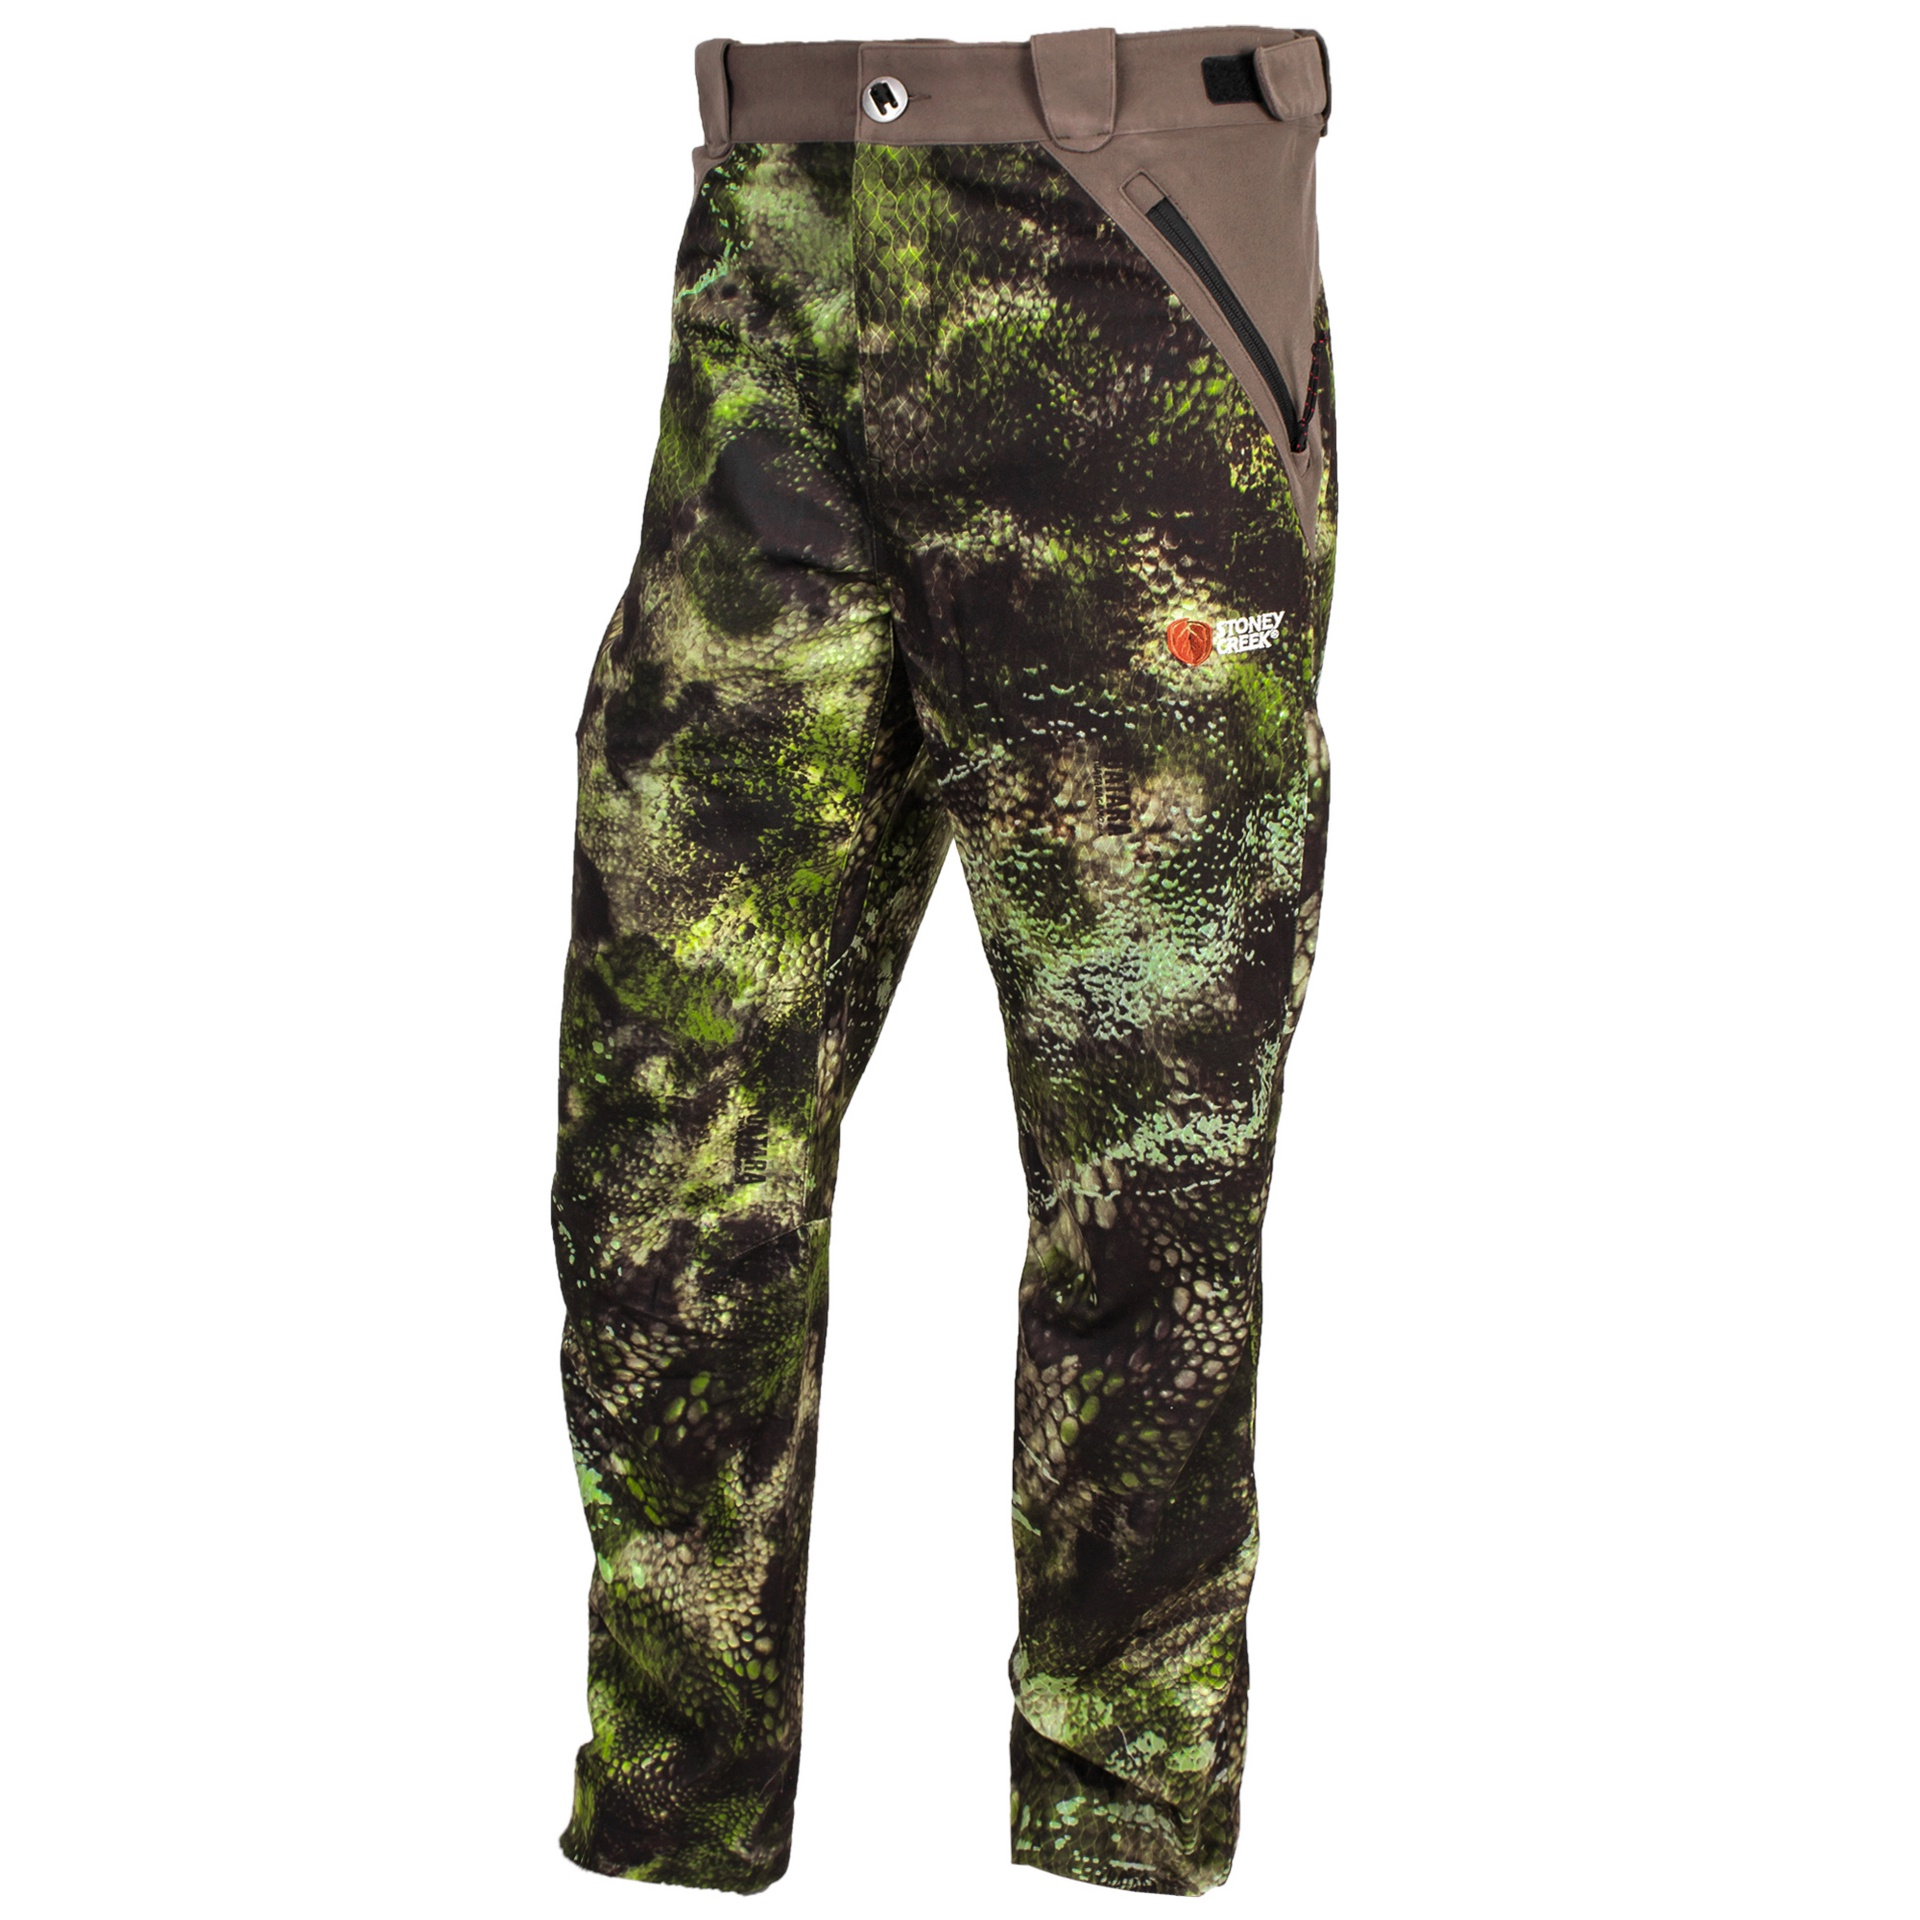 Stoney Creek Microtough Trousers - Tuatara Forest